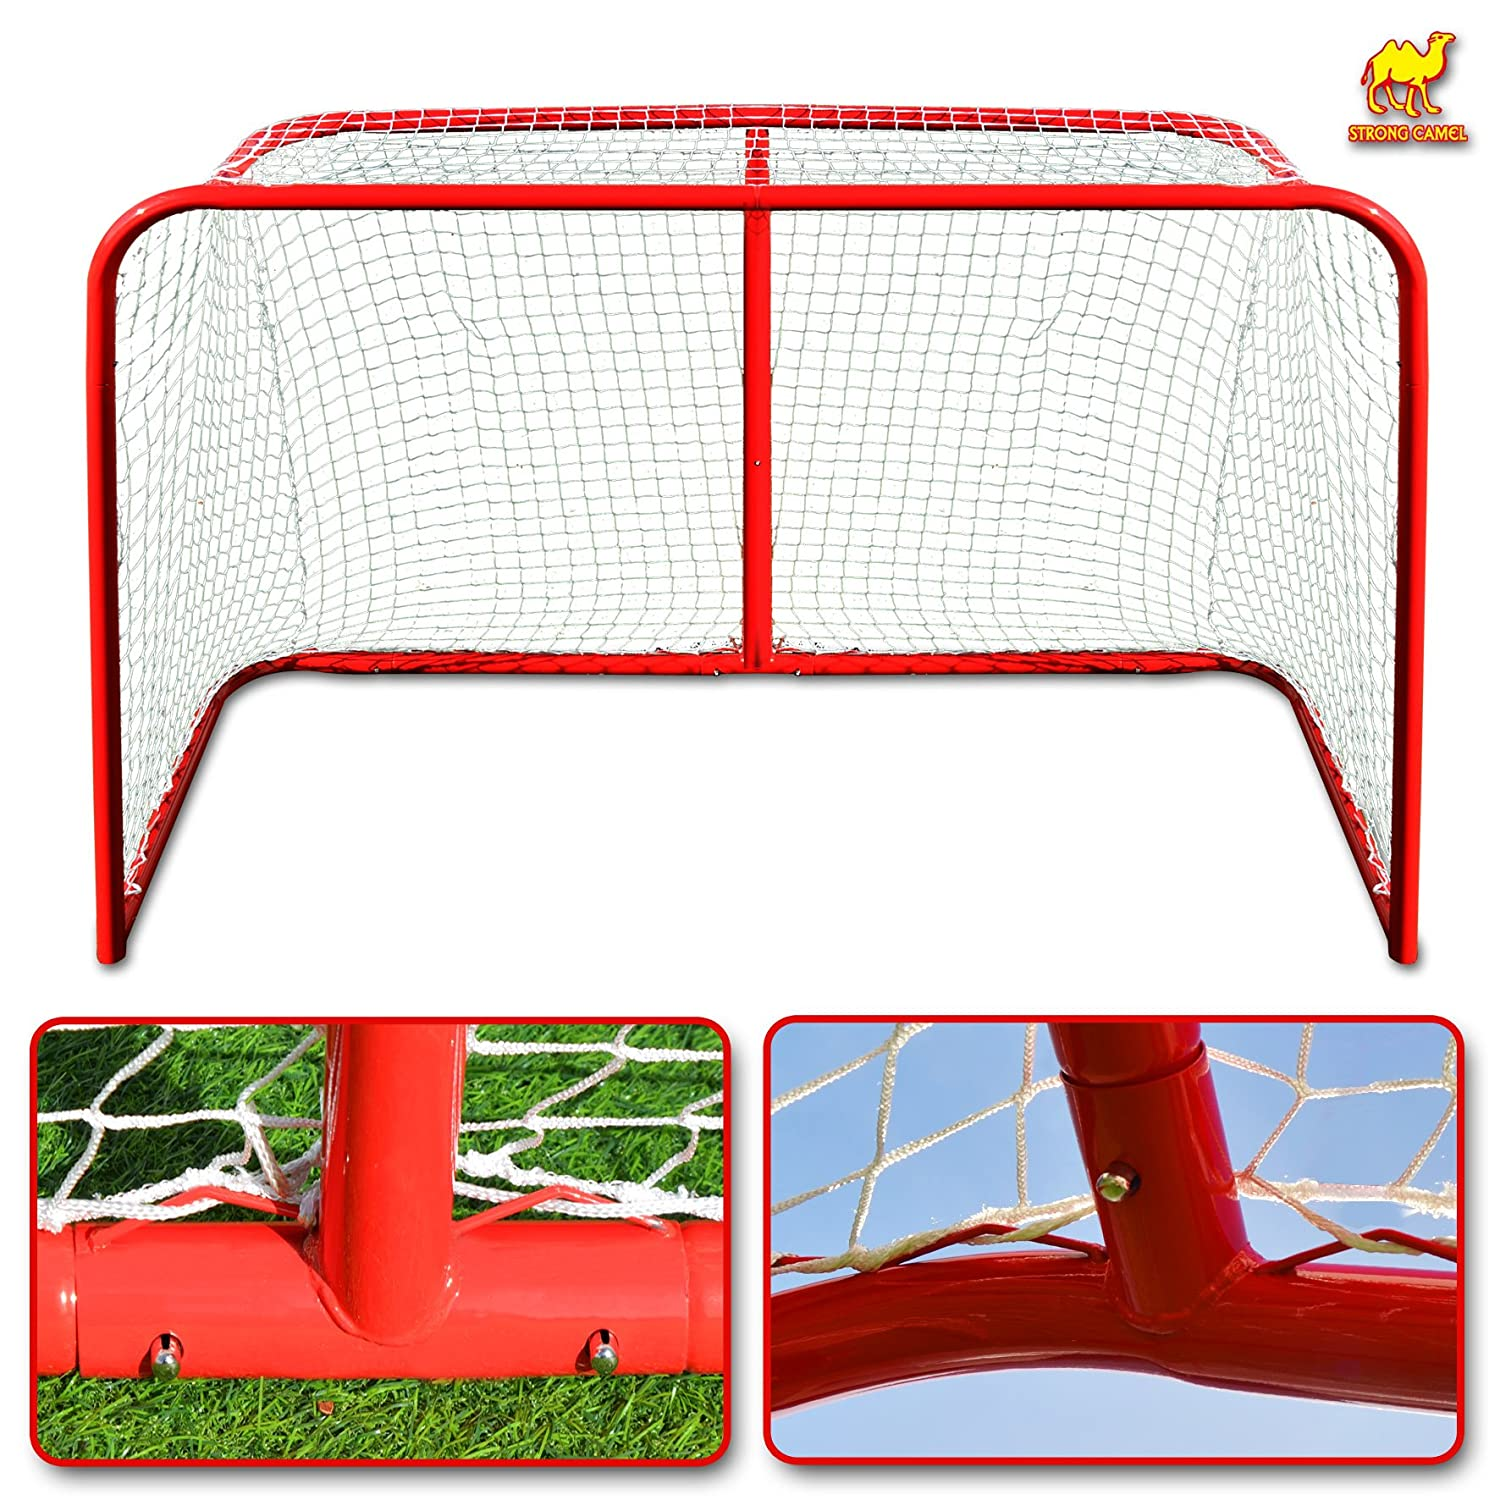 "Strong Camel Senior Hockey Elite Goal With Steel Tubing 72"" x 48"" x 30"" (4 x 6-Feet) Regulation Net Ice Hockey Goal"